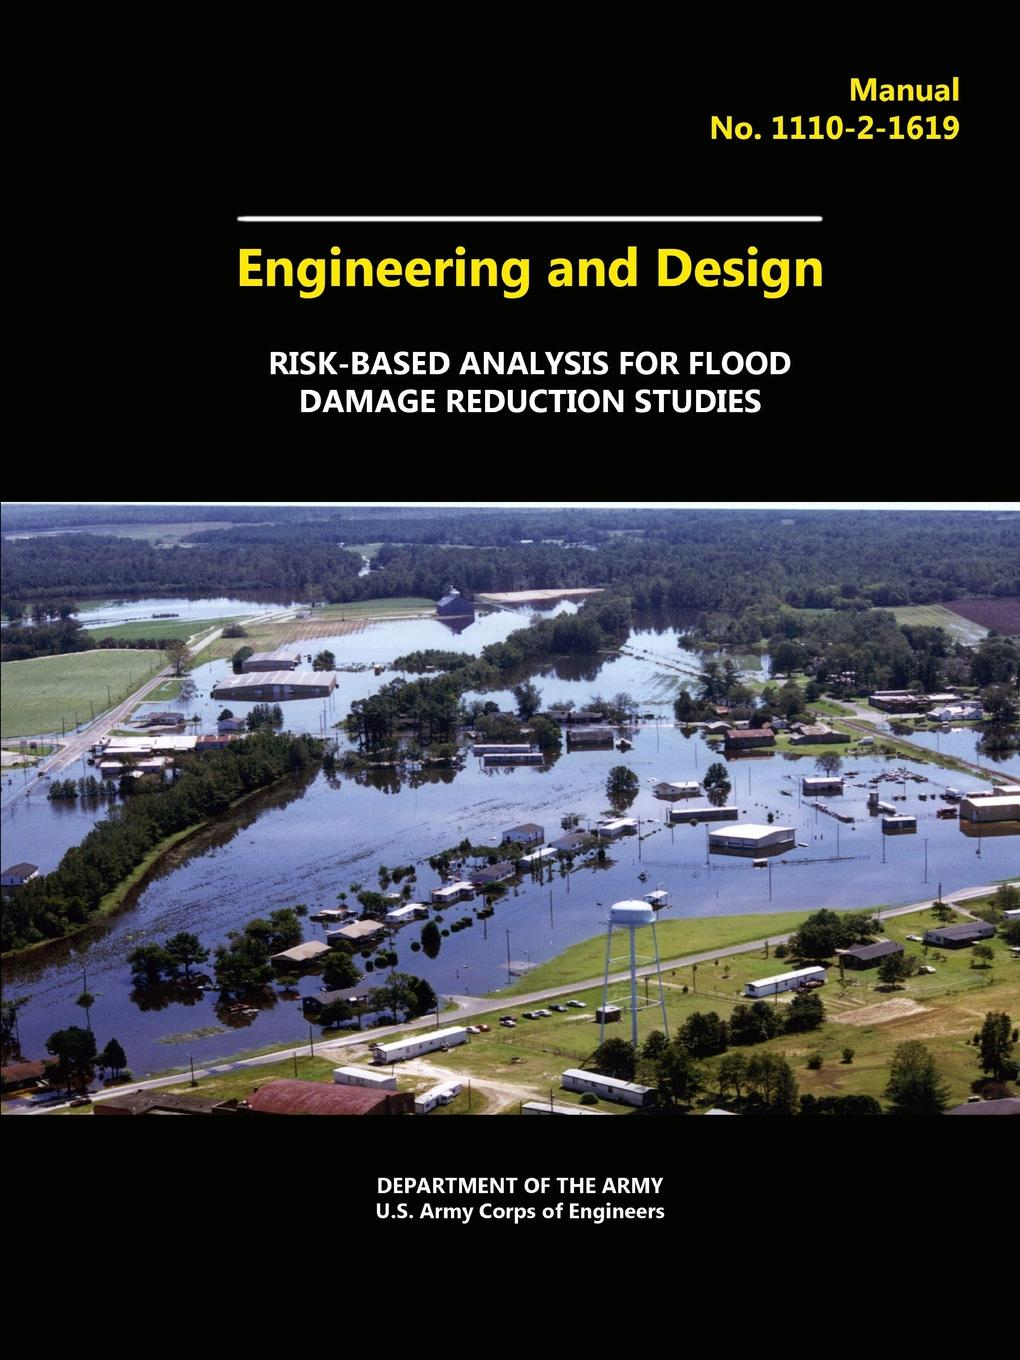 U.S. Army Corps of Engineers, Army Department of the Engineering and Design - Risk-Based Analysis for Flood Damage Reduction Studies david dowrick j earthquake resistant design and risk reduction